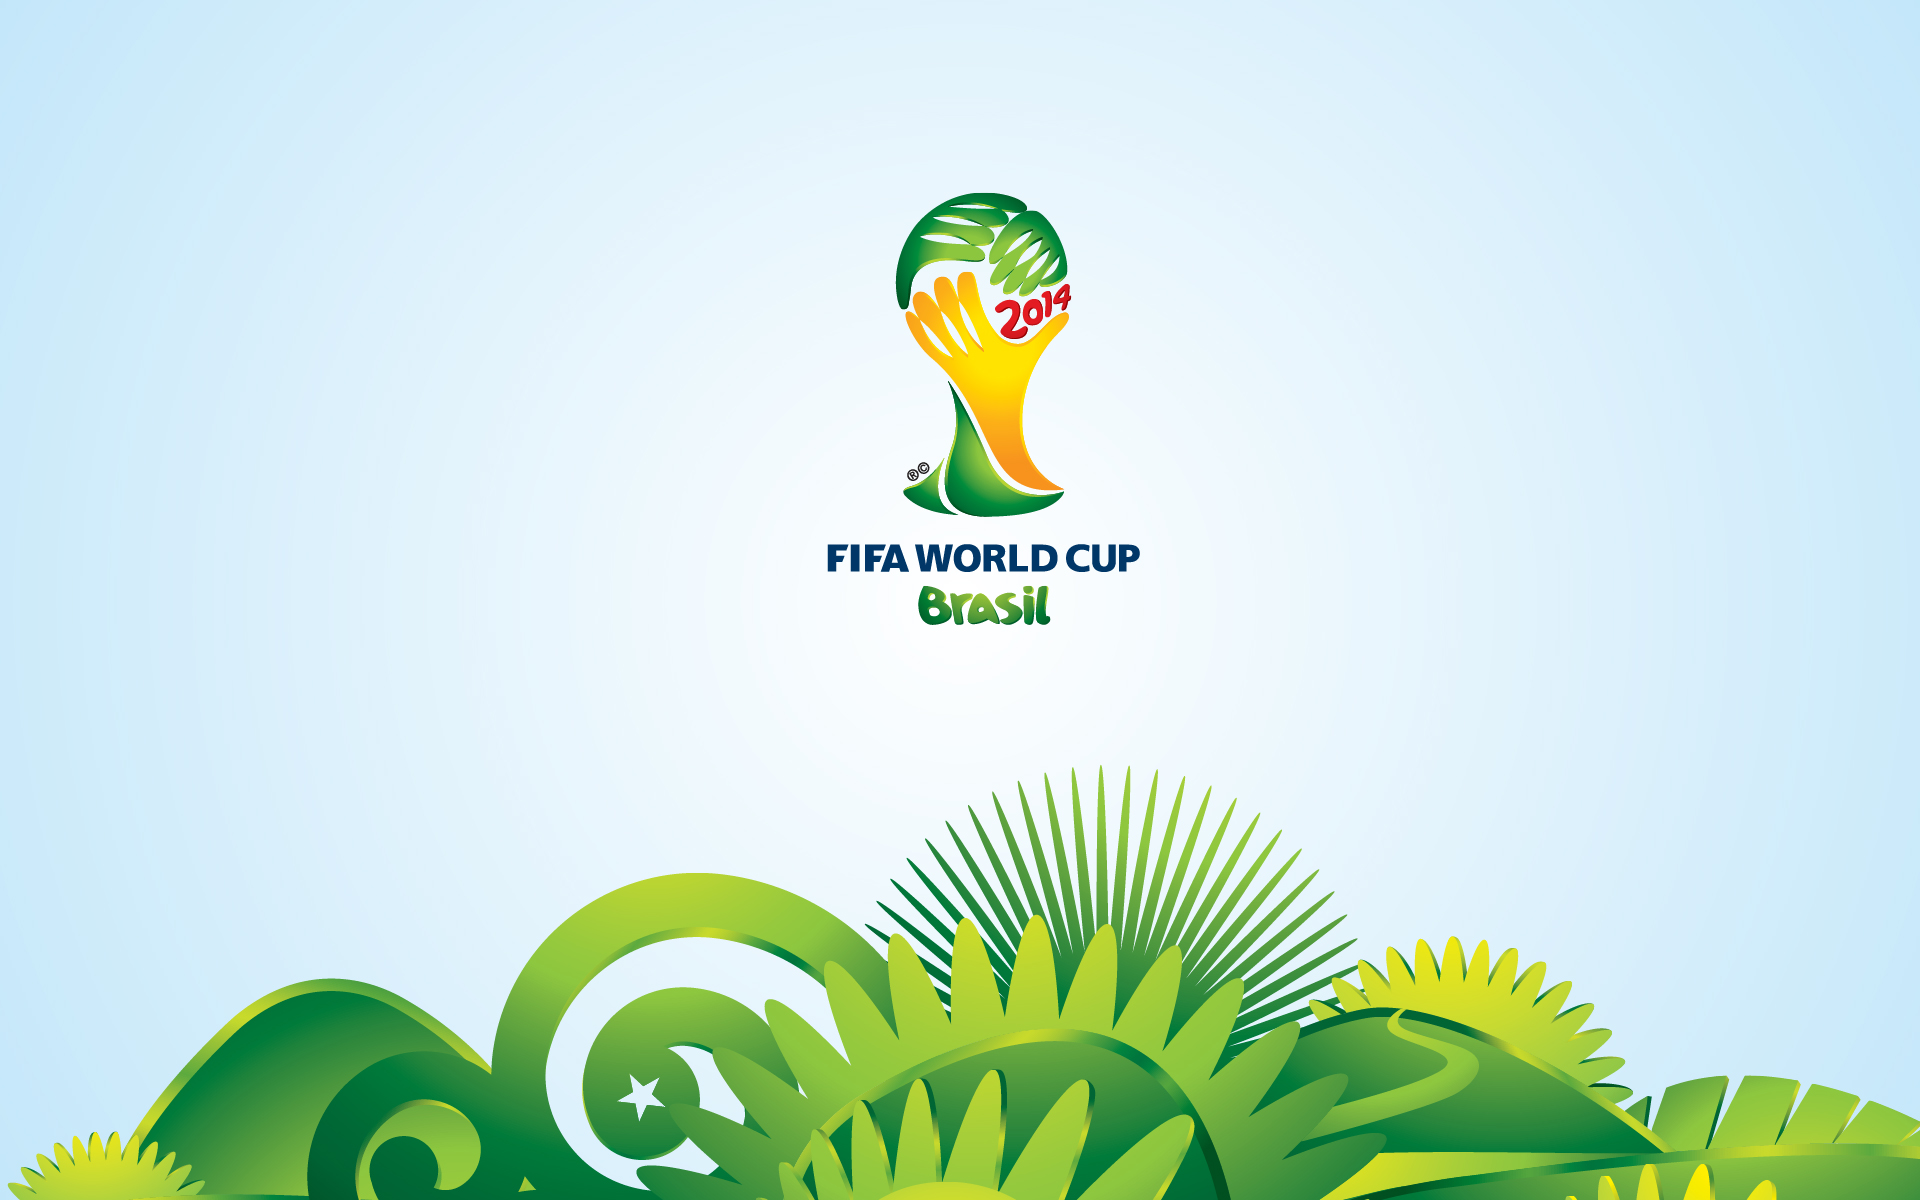 FIFA-world-cup-Wallpaper-1920x1200.jpg